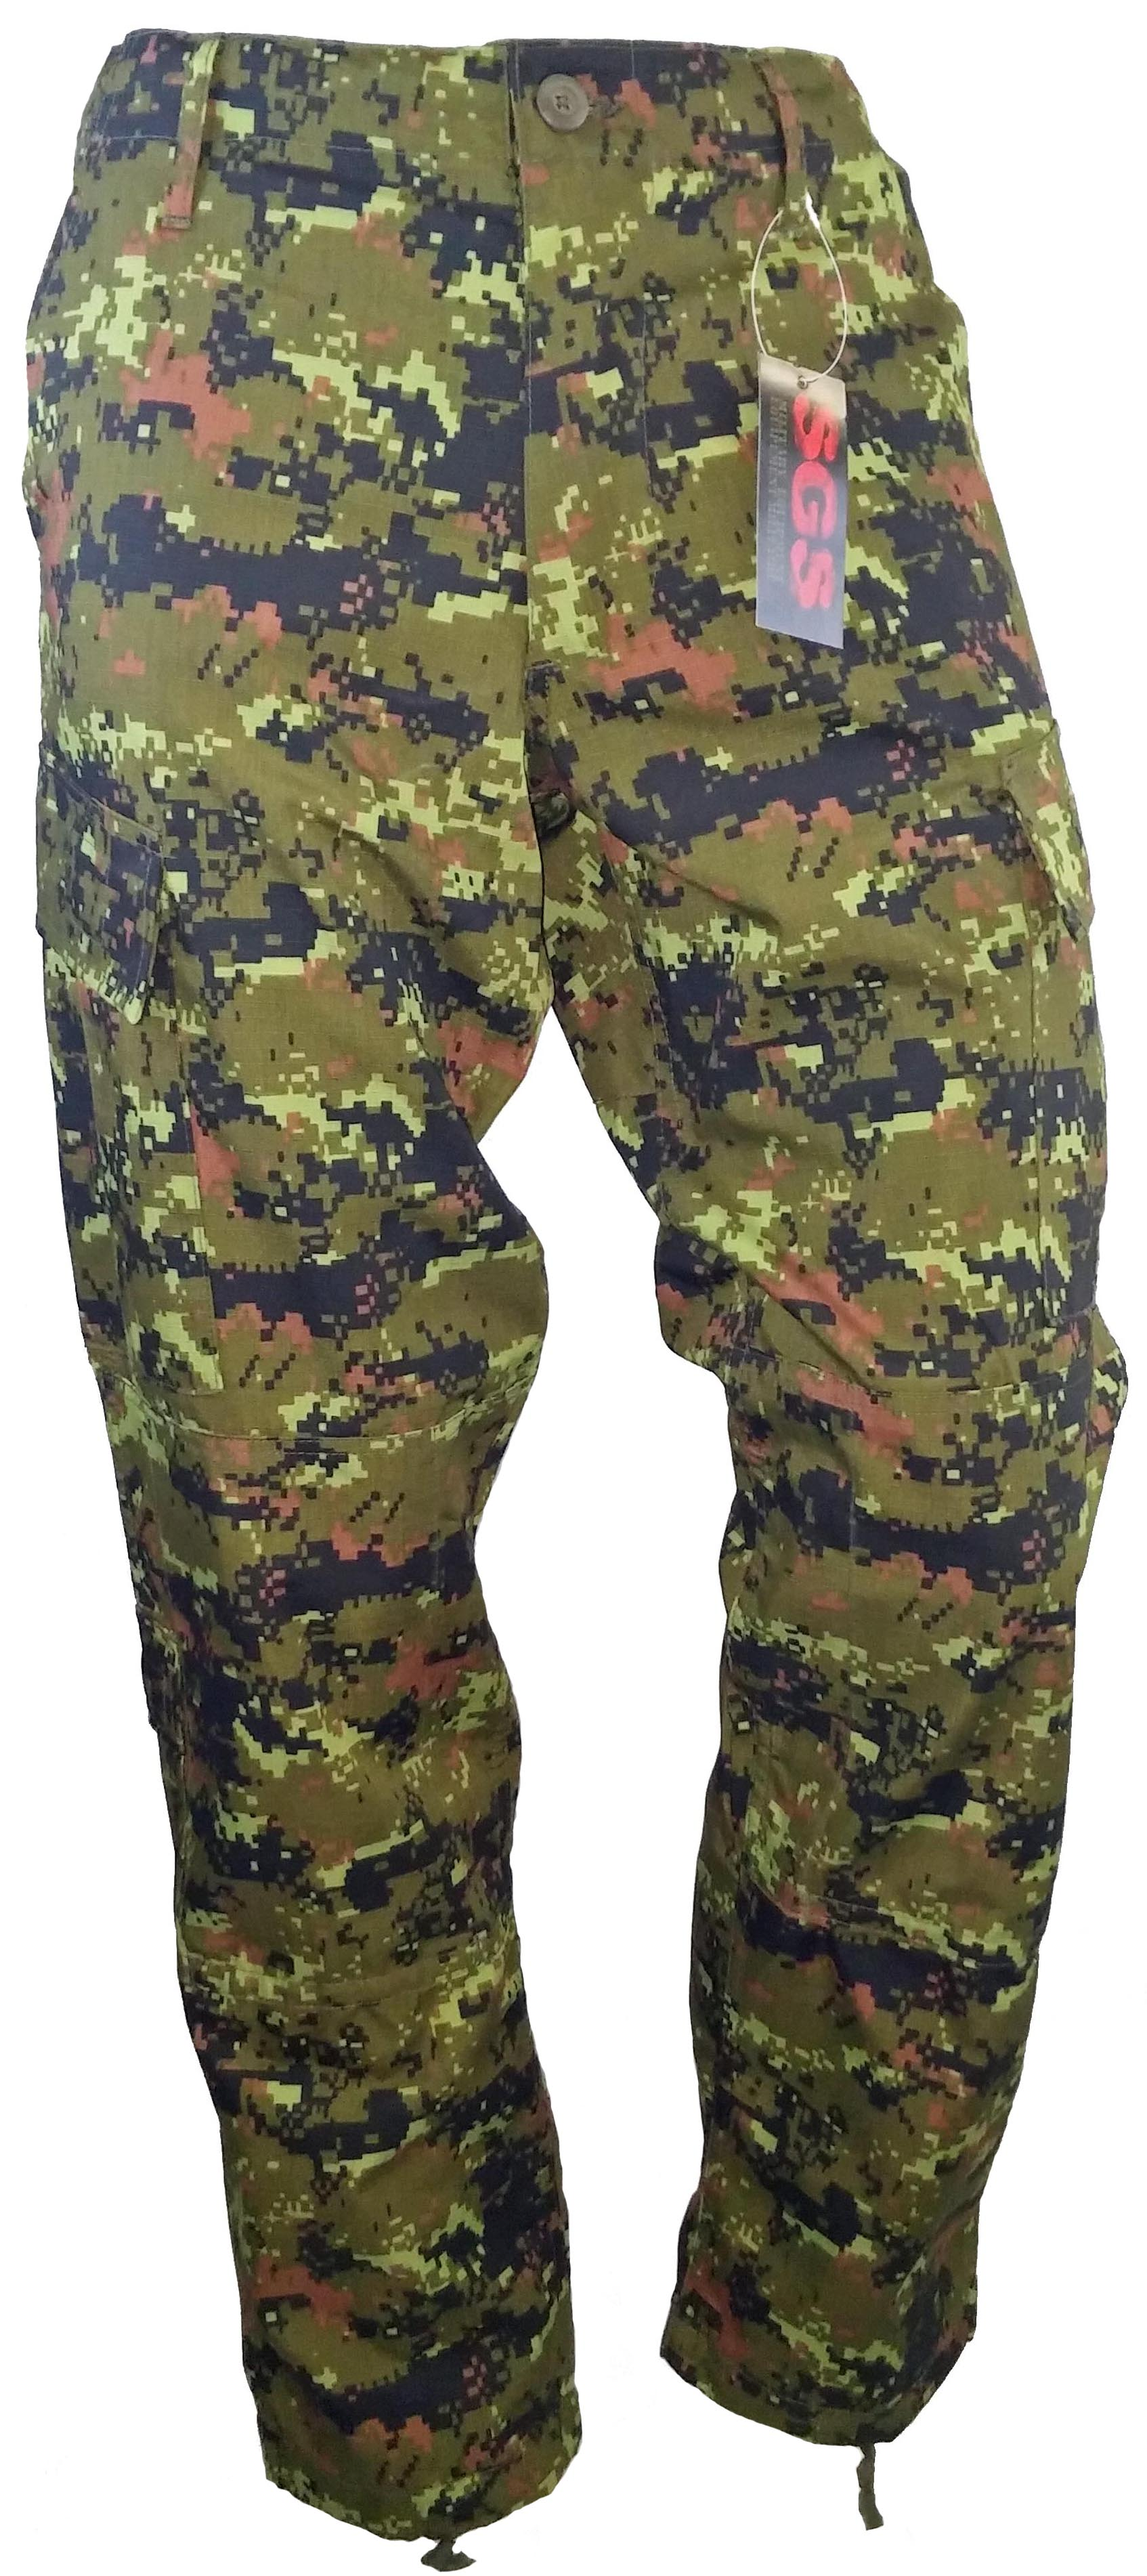 SGS Acu combat pants digital